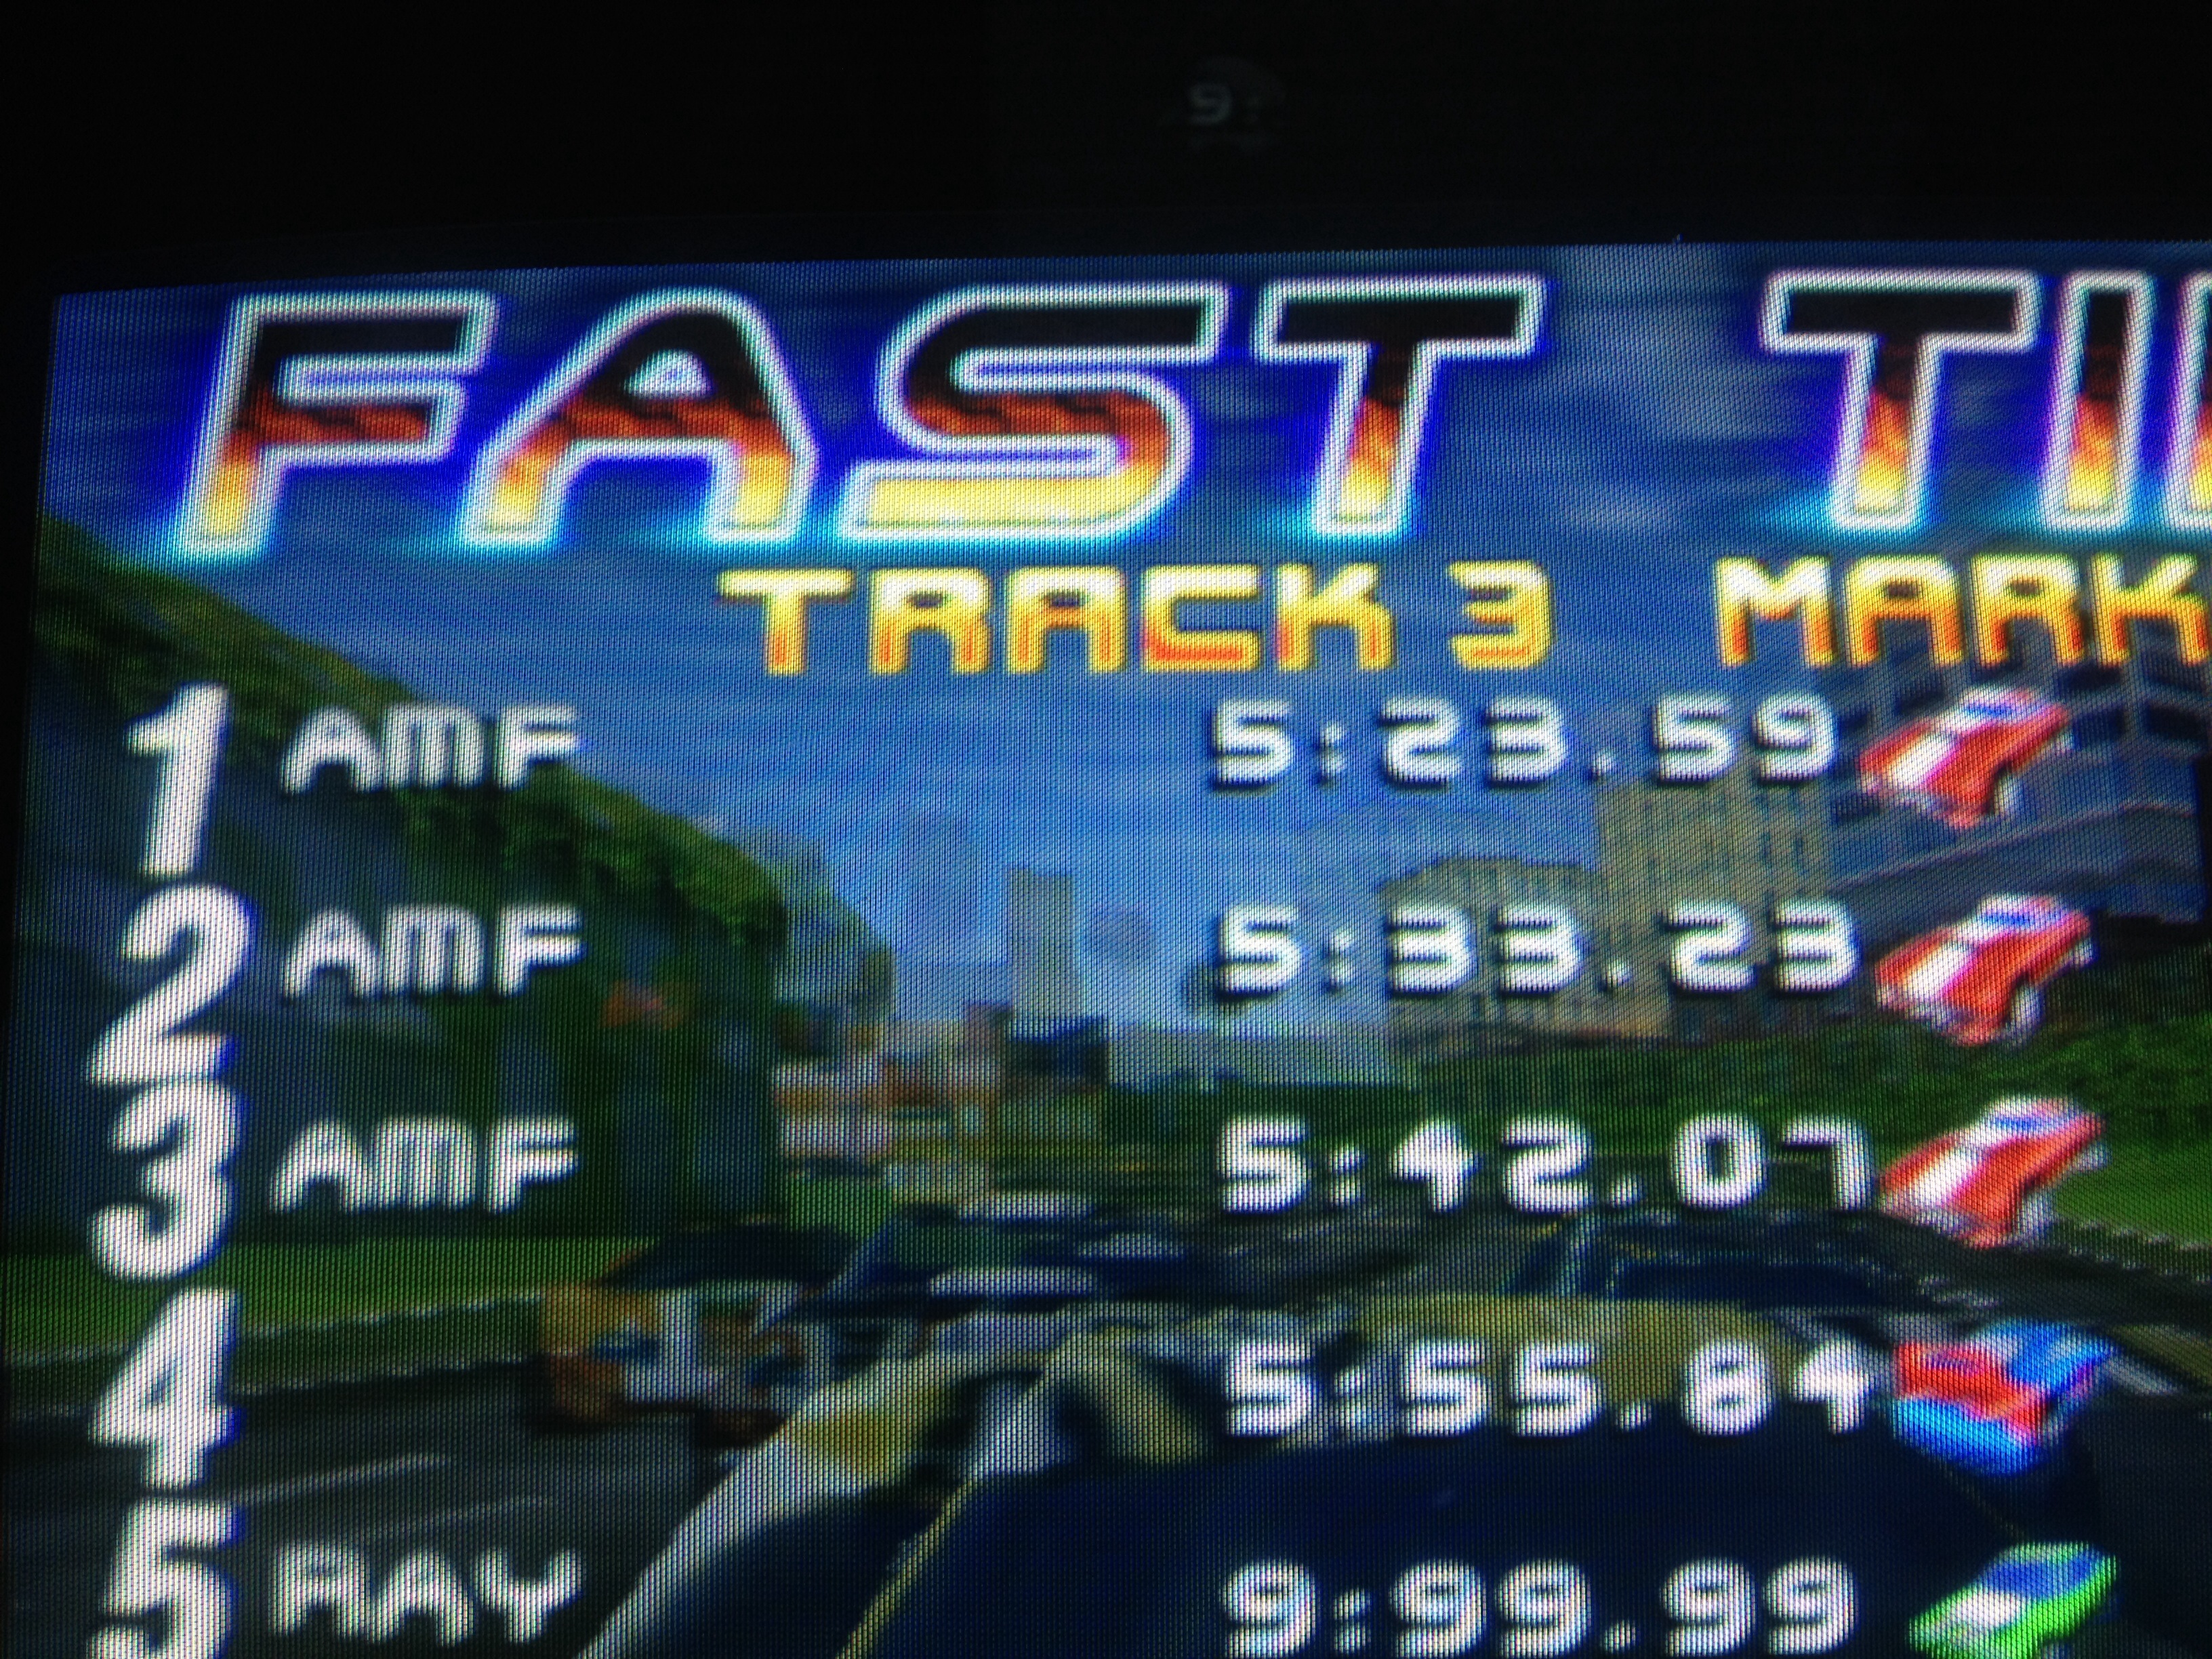 San Francisco Rush: The Rock [Track 3] time of 0:05:23.59